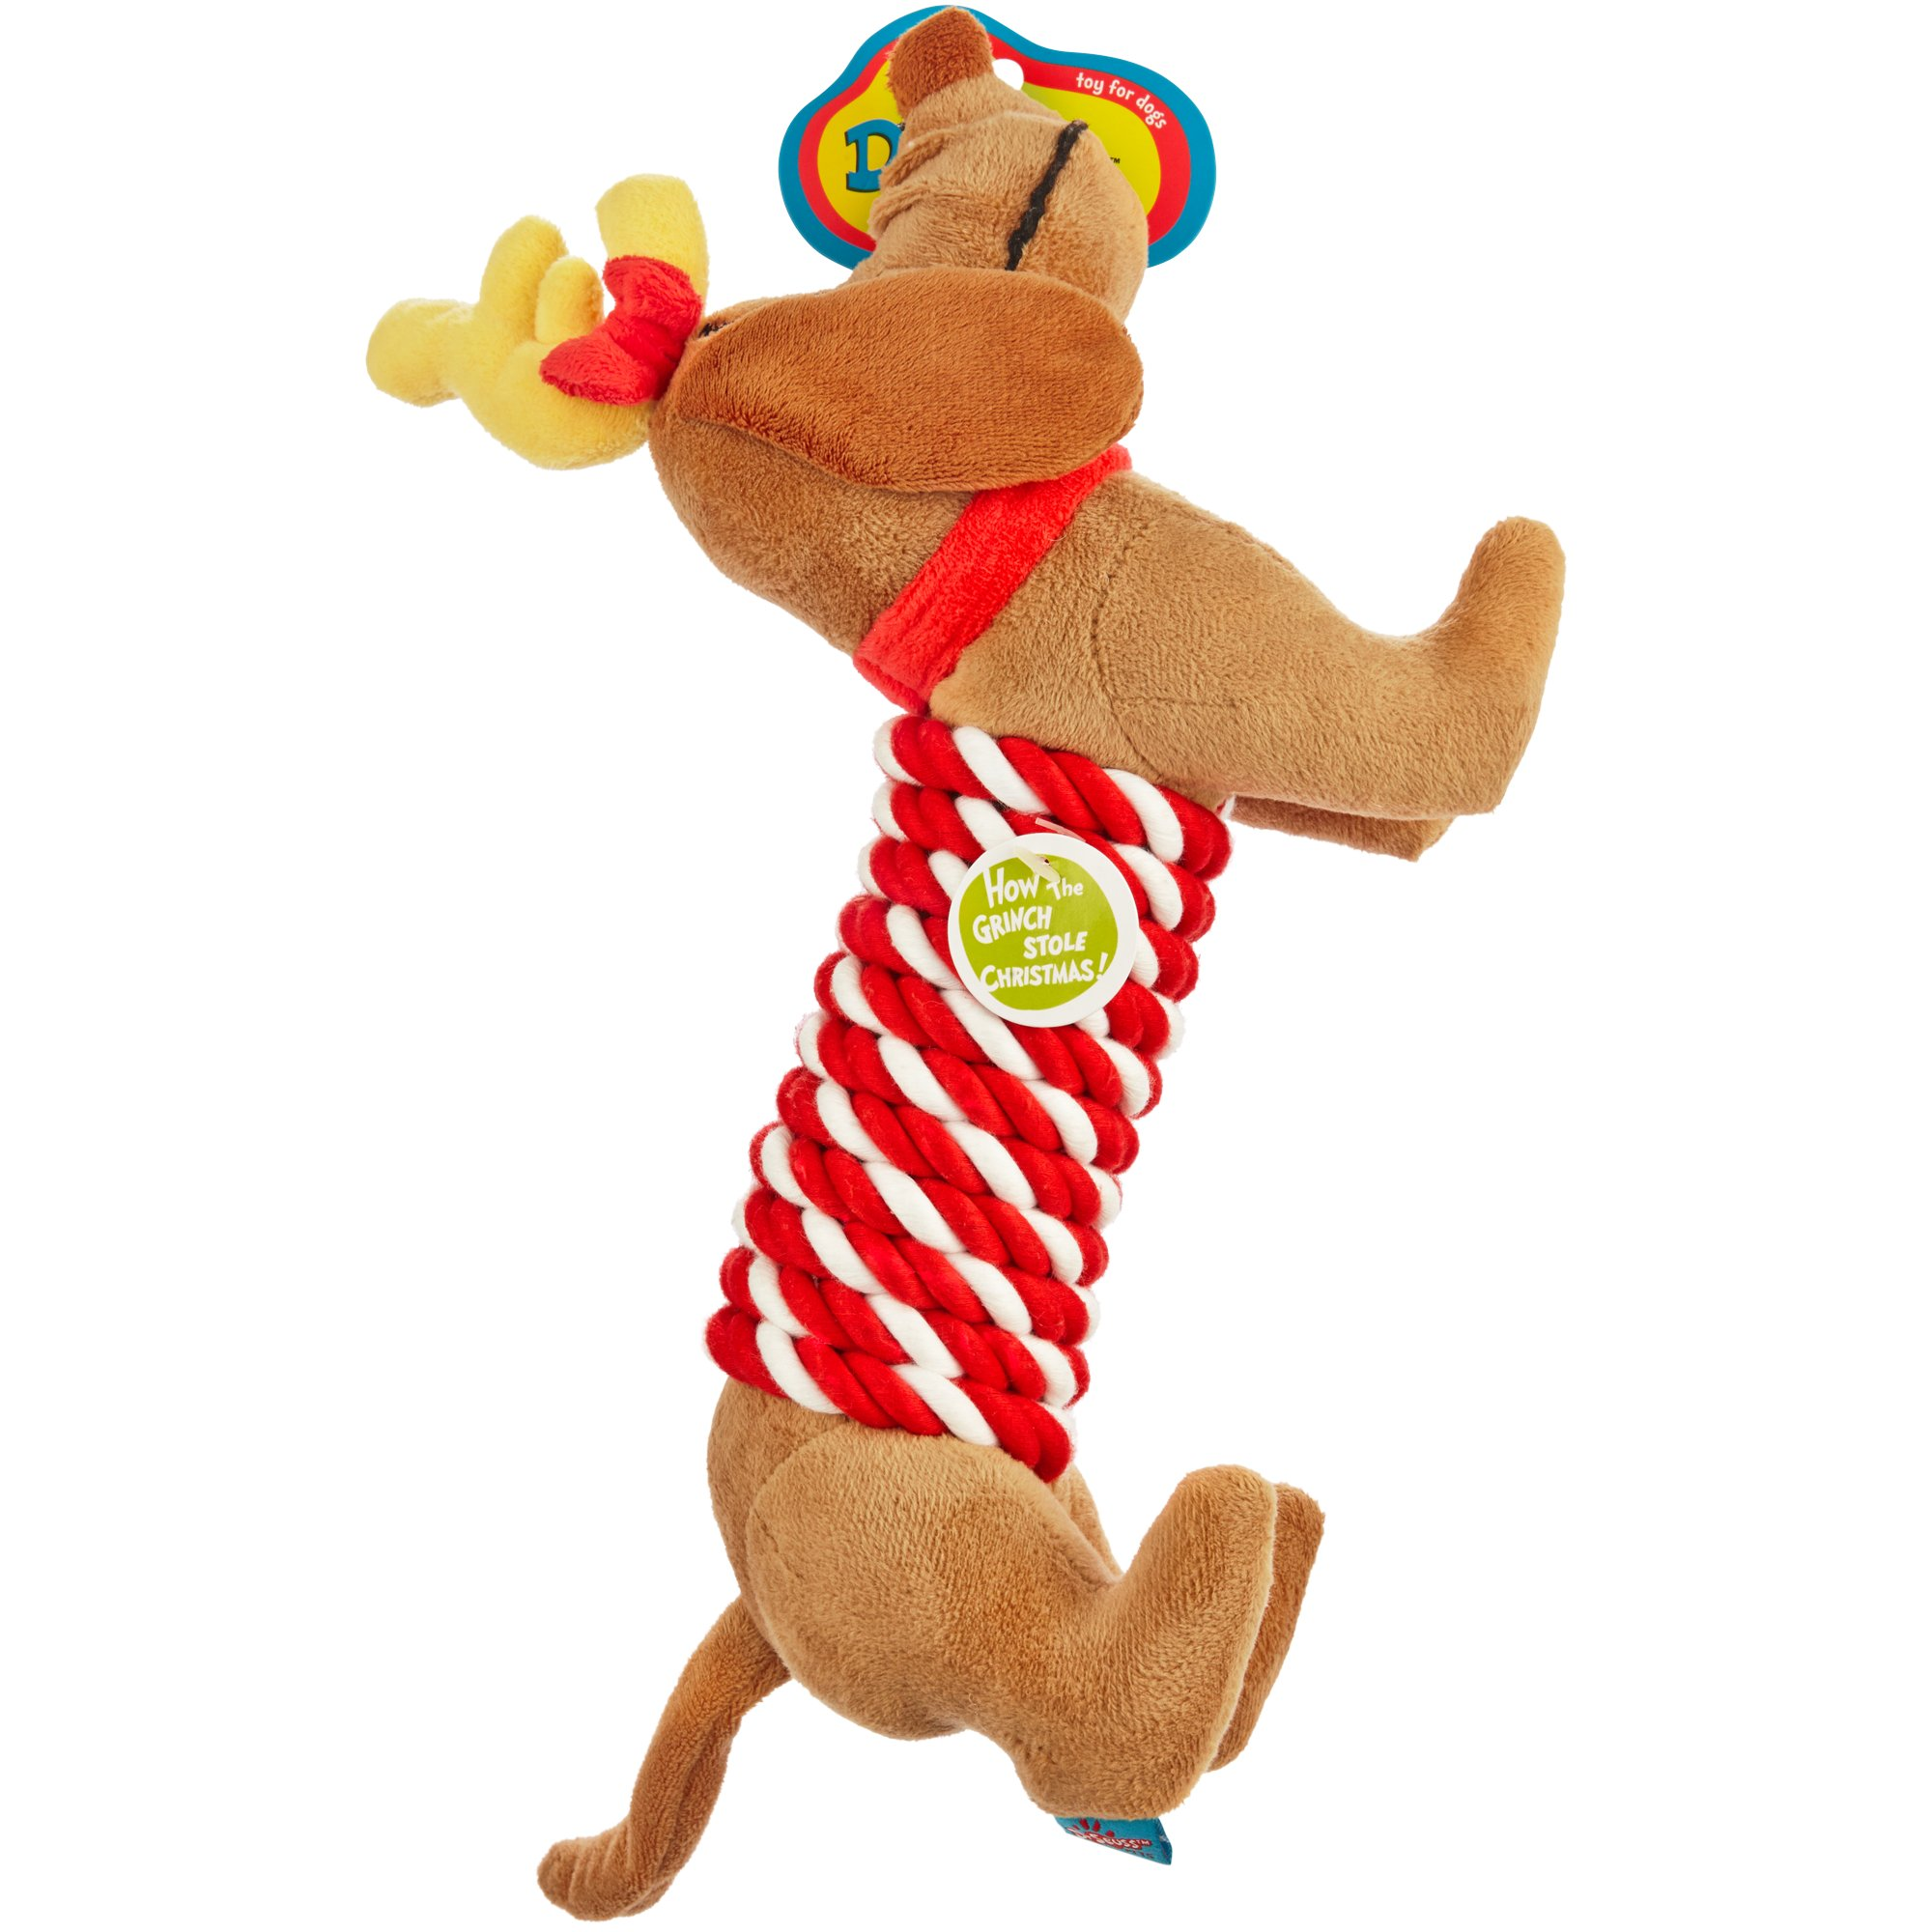 Uncategorized Grinch Dog dr seuss how the grinch stole christmas max rope stick dog toy petco